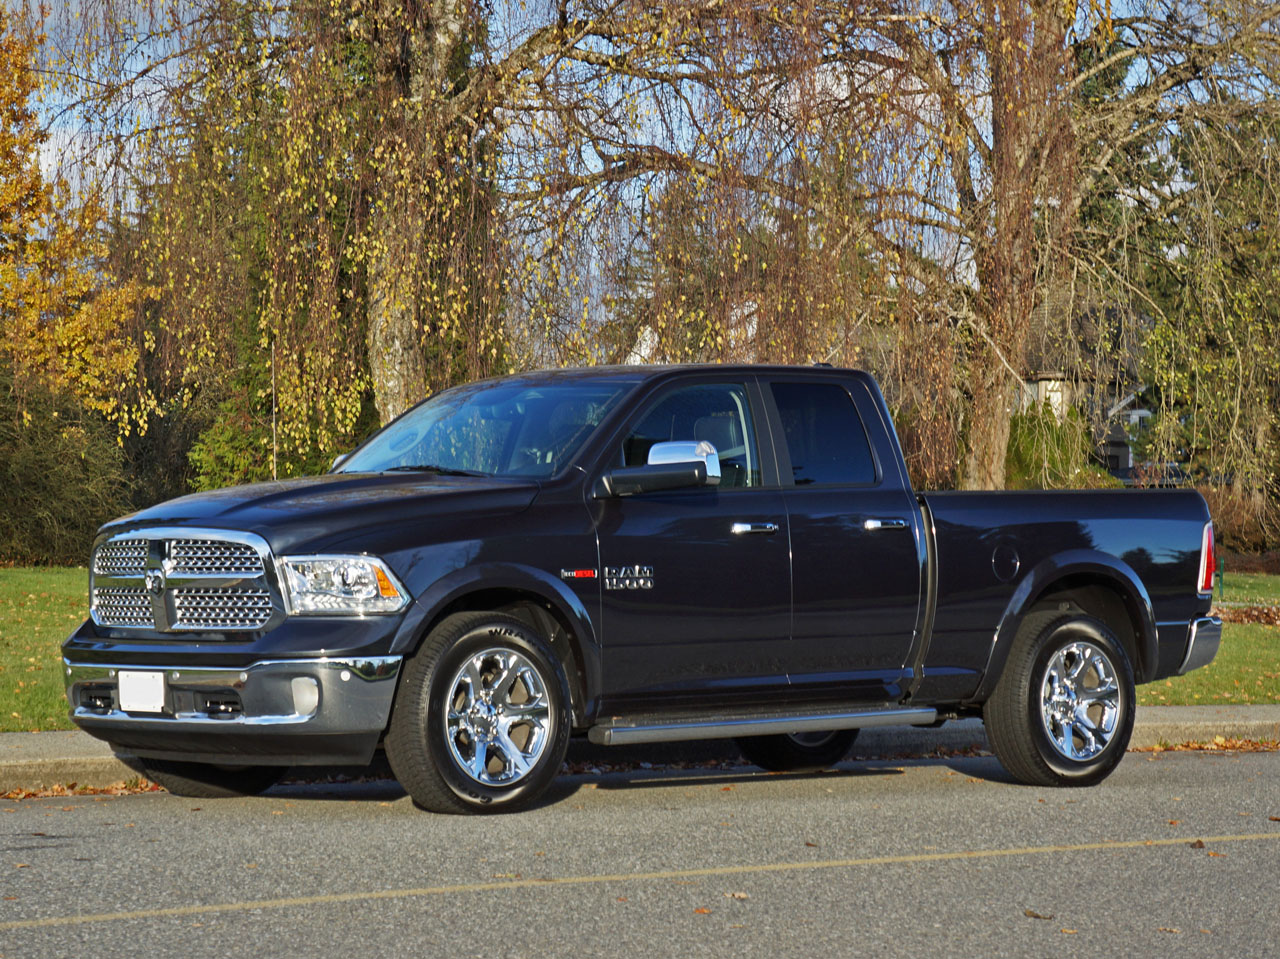 2015 ram 1500 ecodiesel laramie quad cab 4x4 road test review carcostcanada. Black Bedroom Furniture Sets. Home Design Ideas